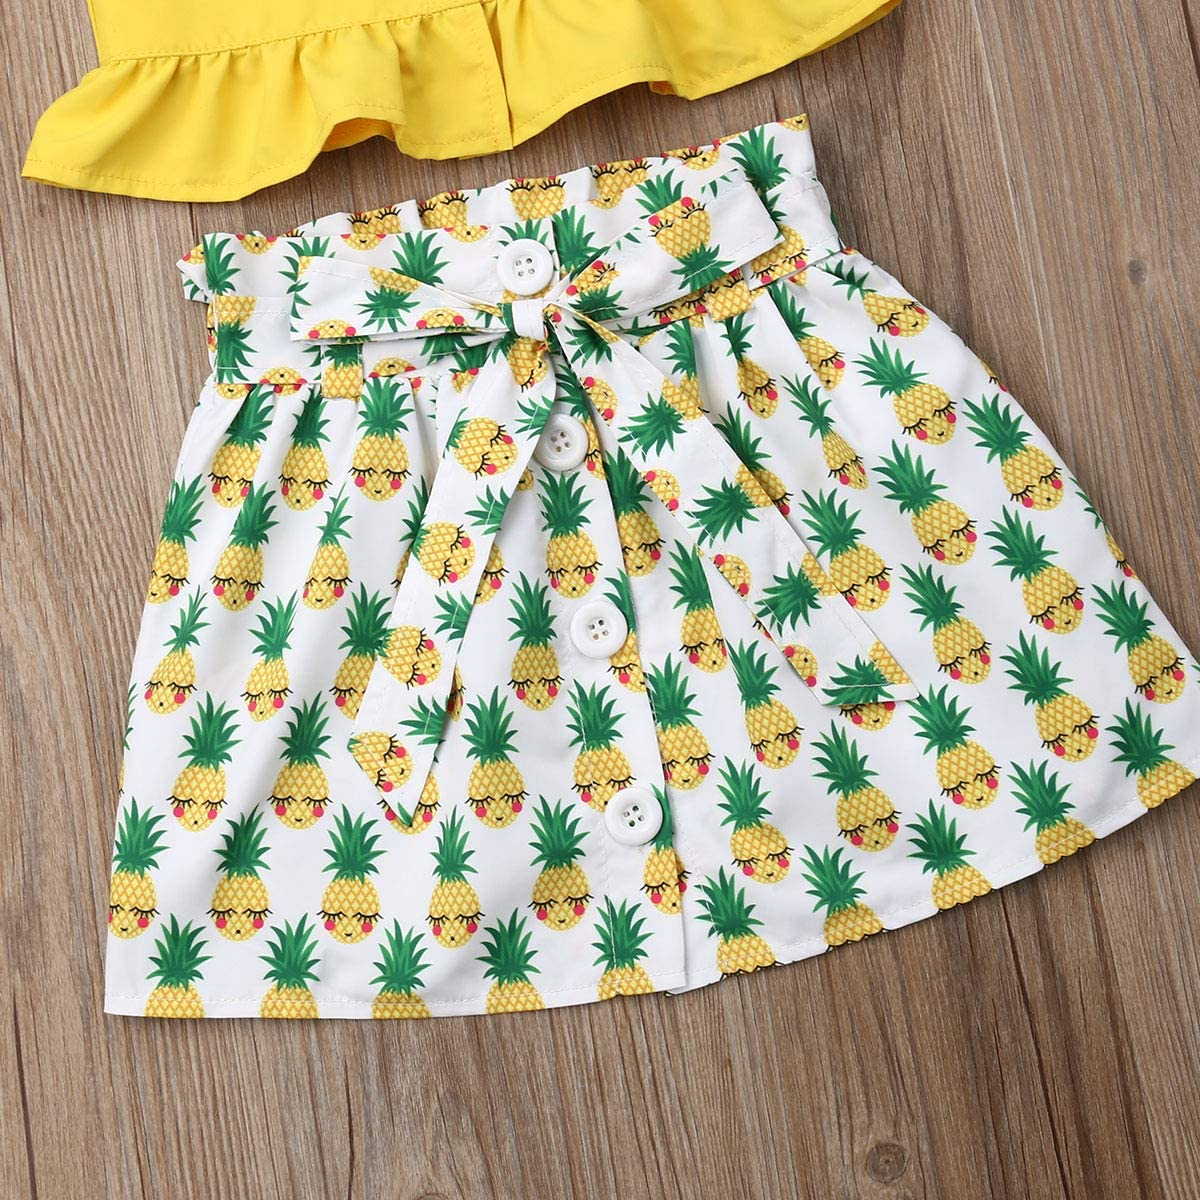 2Pcs Toddler Kids Baby Girls Ruffle Strap Crop Top+Bowknot Floral Skirt Summer Outfit Clothes Set